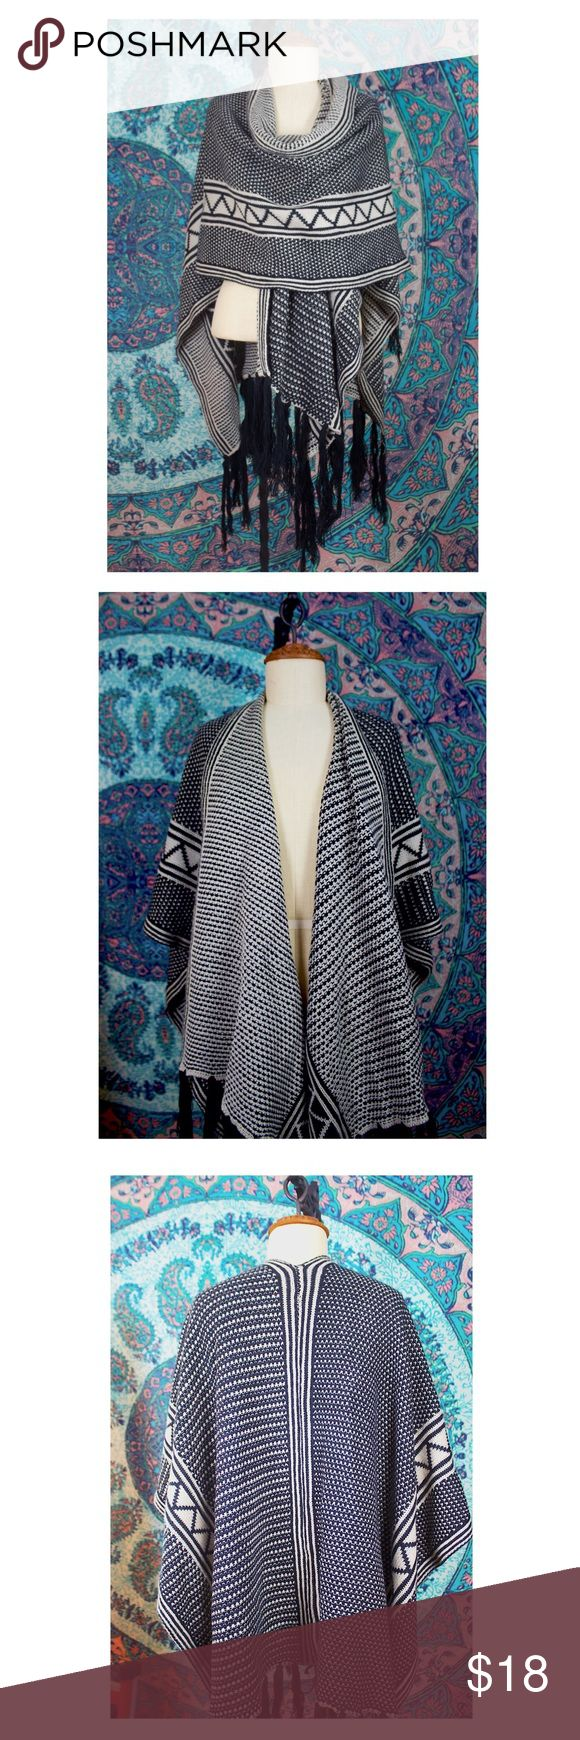 B&W Fringed Shawl This amazing fringed shawl is functional and fashionable. Wear it draped around your shoulders or wrap it around you. Layer it under coats and light jackets or wear it over a long sleeve in fall. Perfect for transitional seasons and for layering on those colder days. Belt it, layer it, wrap yourself up tight. I received this as a gift and already have so many of this style. Never been worn. Francesca's Collections Accessories Scarves & Wraps